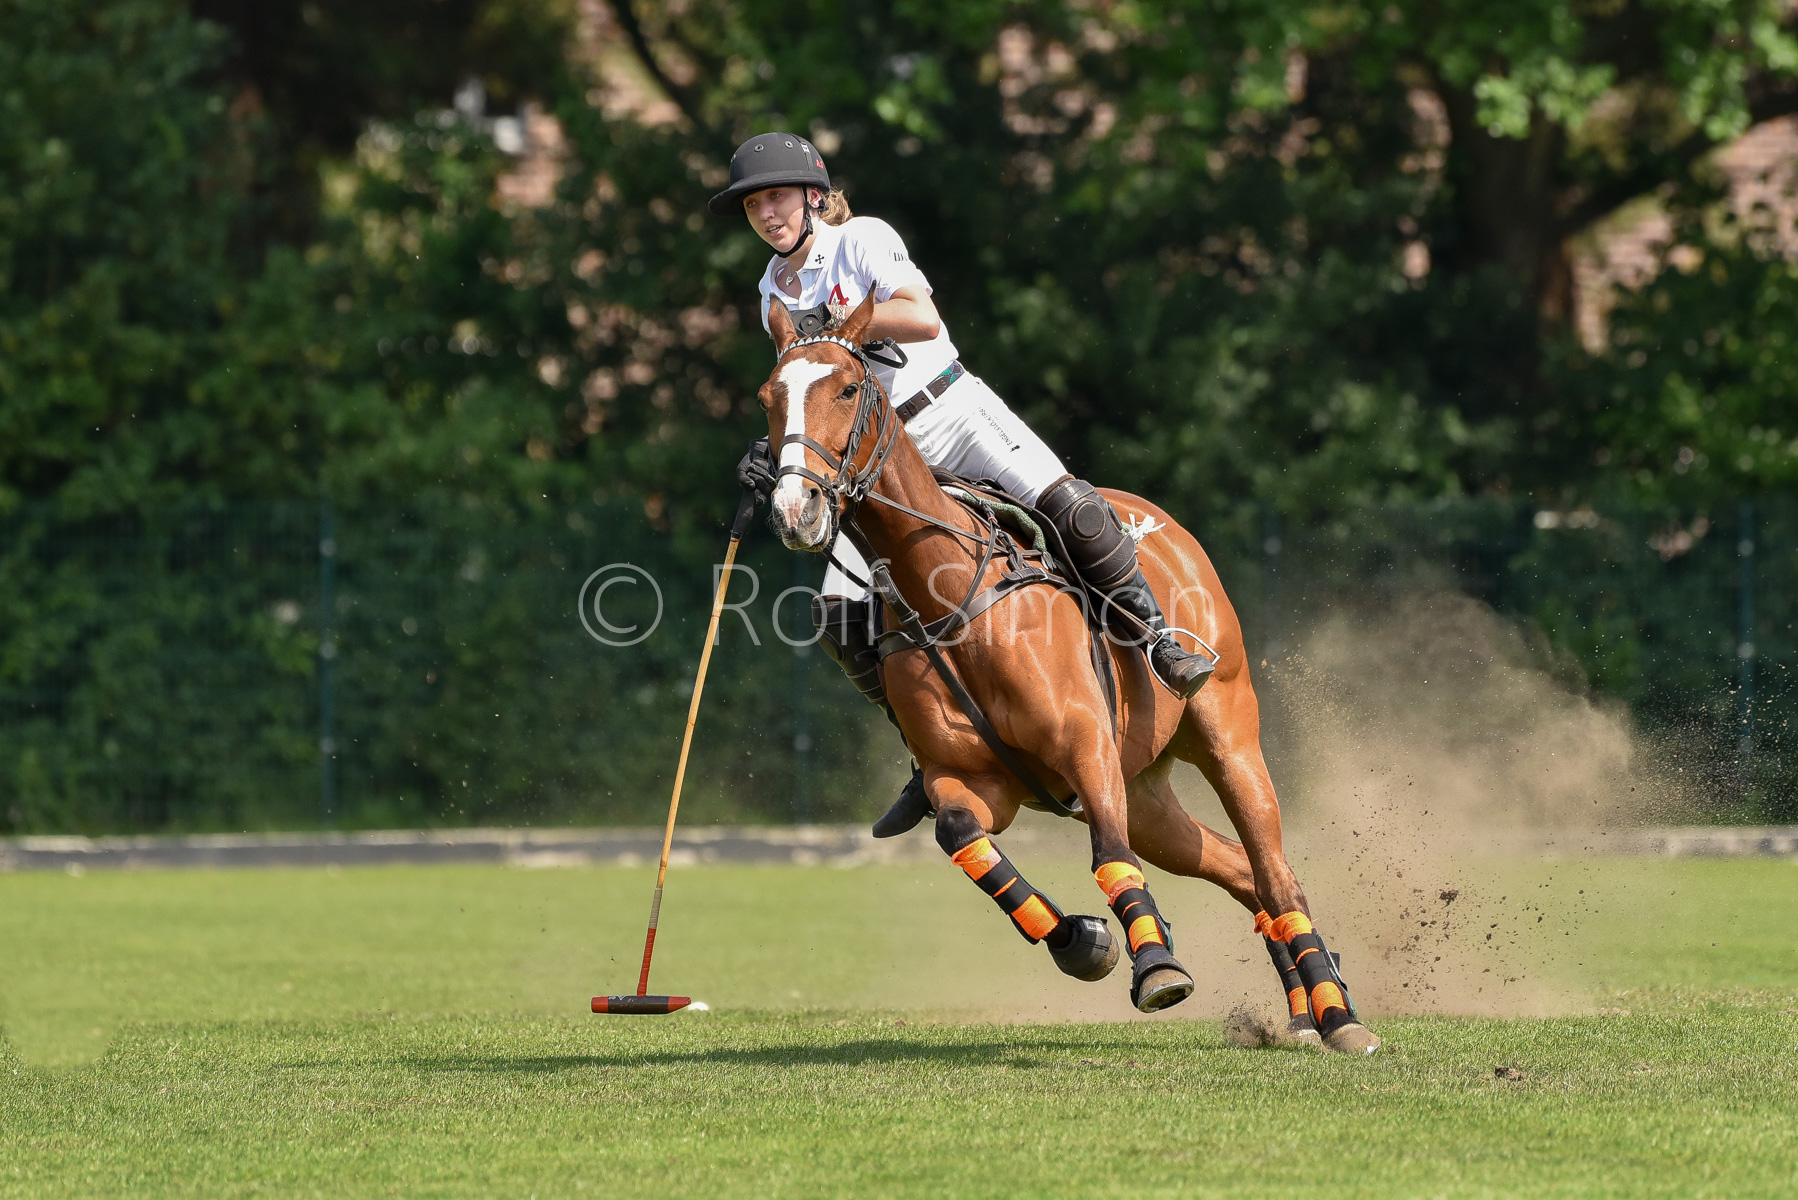 13.FIP Polo Jugend Camp 2019 0173